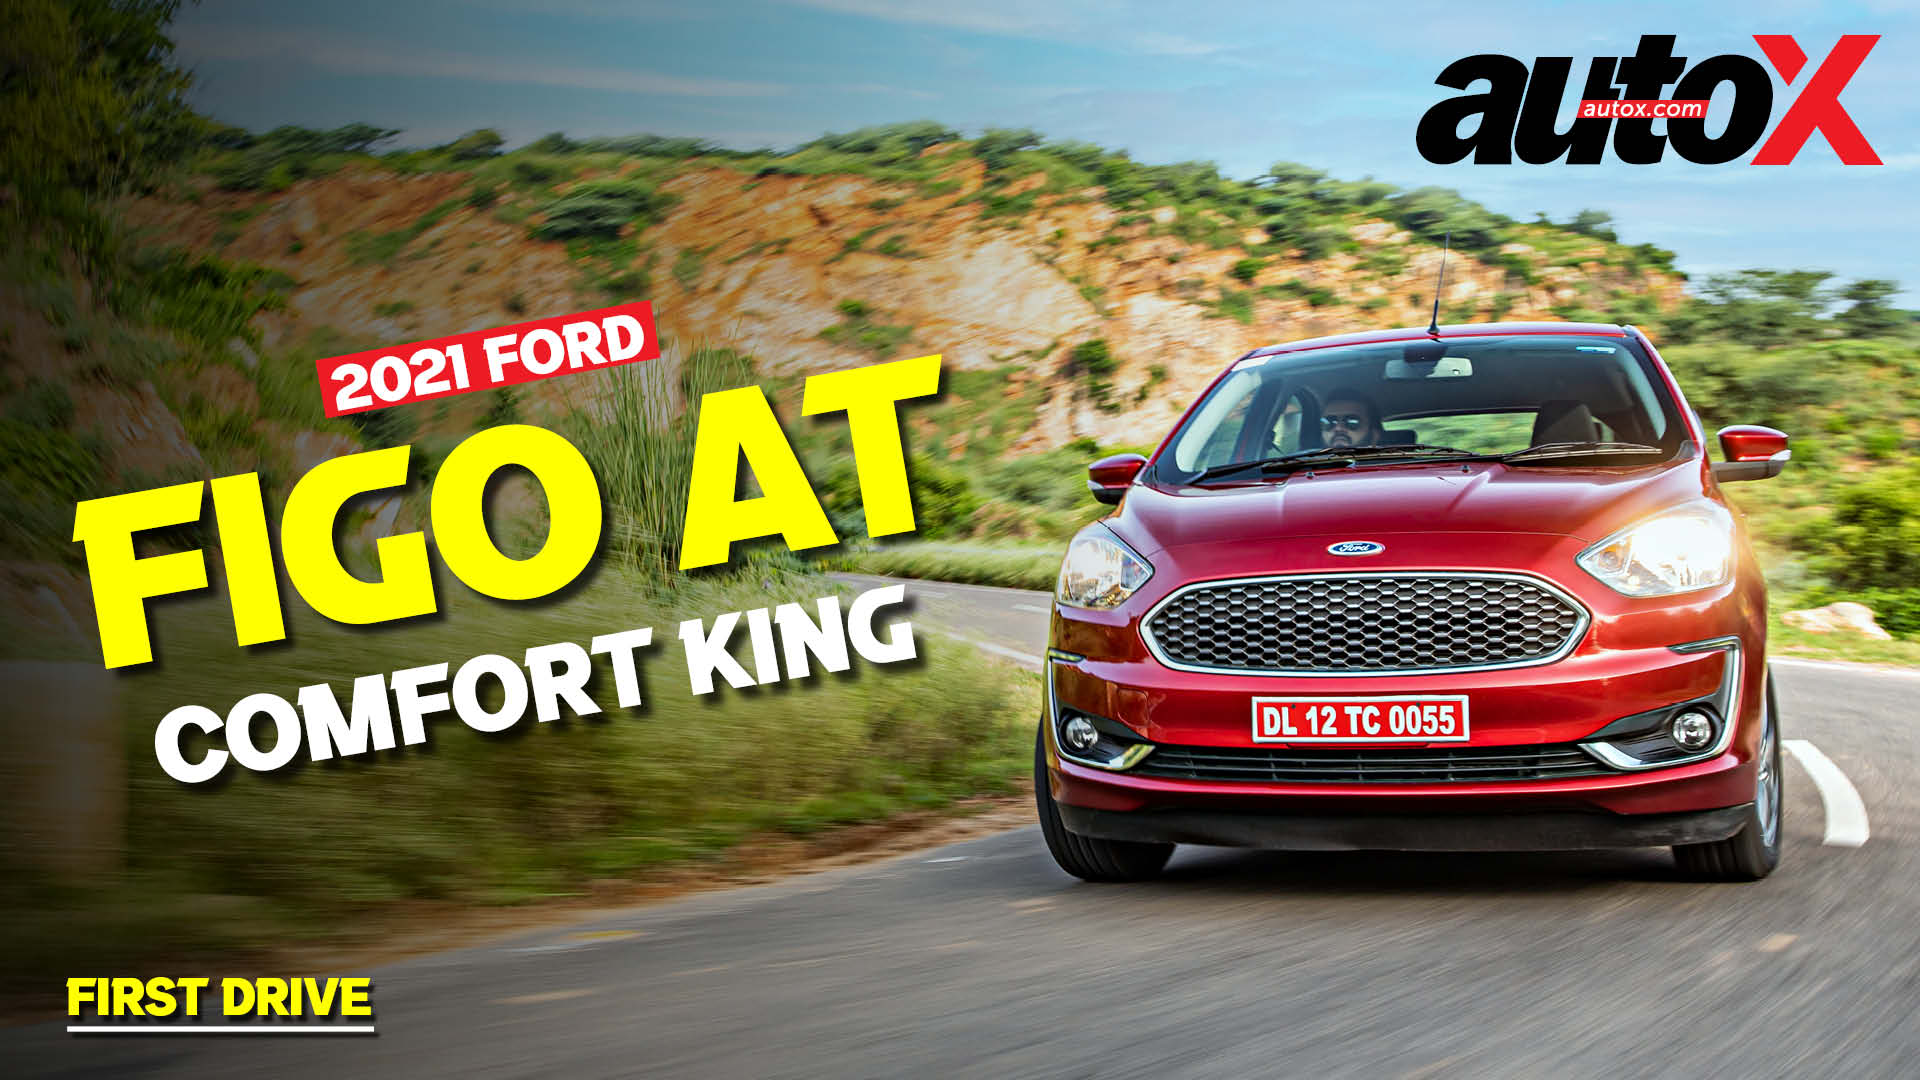 2021 Ford Figo Automatic: It's simple, very comfortable & hard to ignore!   Review   autoX